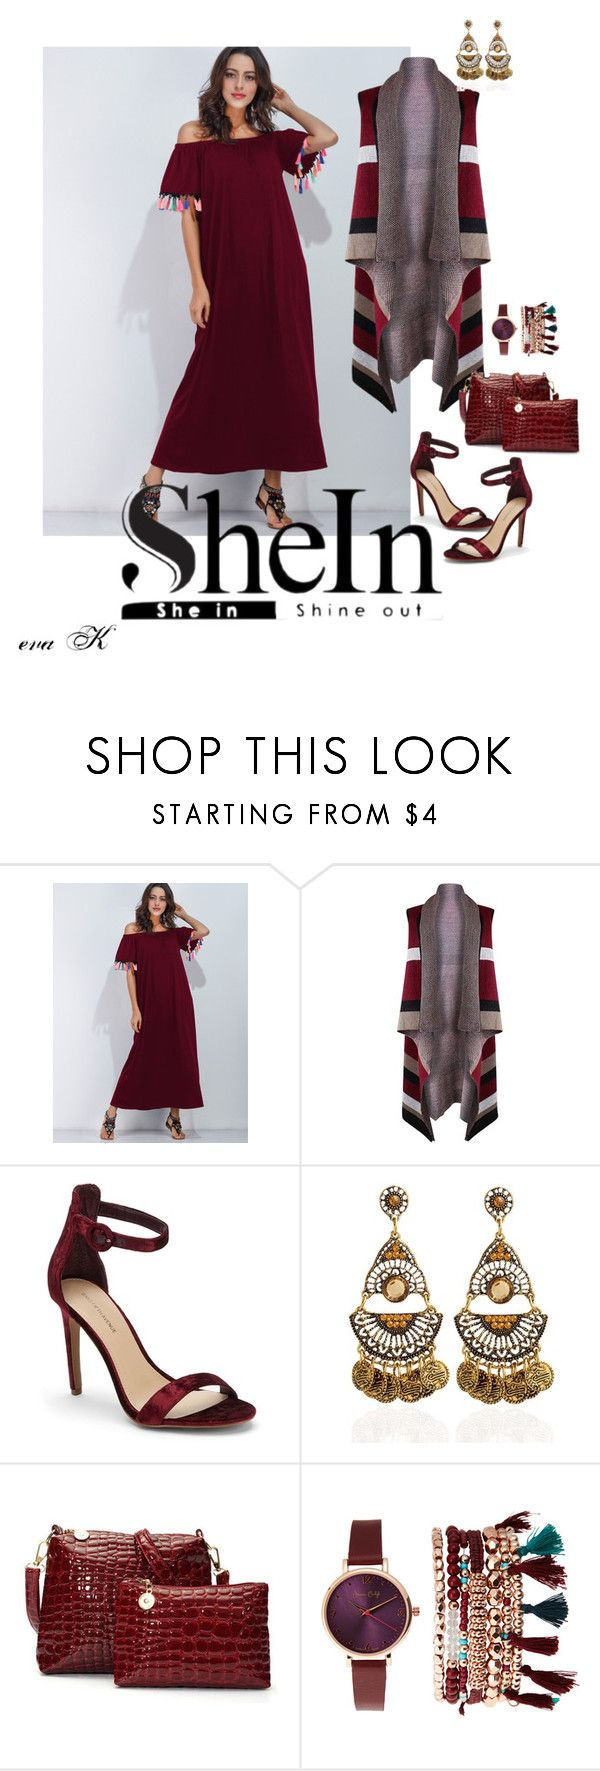 """✿ DRESS ✿"" by eva-kouliaridou ❤ liked on Polyvore featuring Saks Fifth Avenue and Jessica Carlyle"